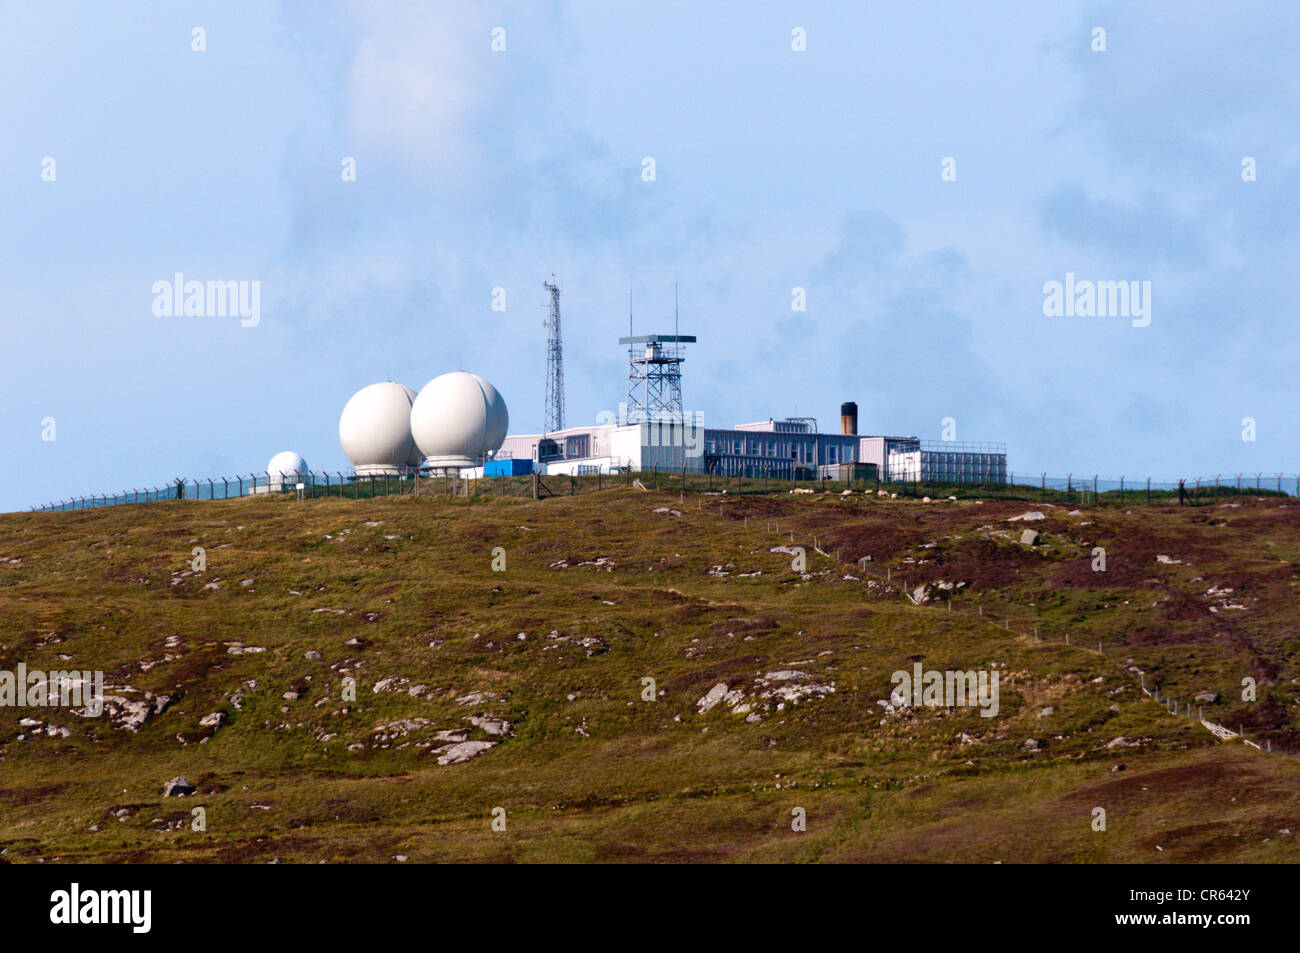 The Range Control Unit for the South Uist Missile Range run by QinetiQ. - Stock Image